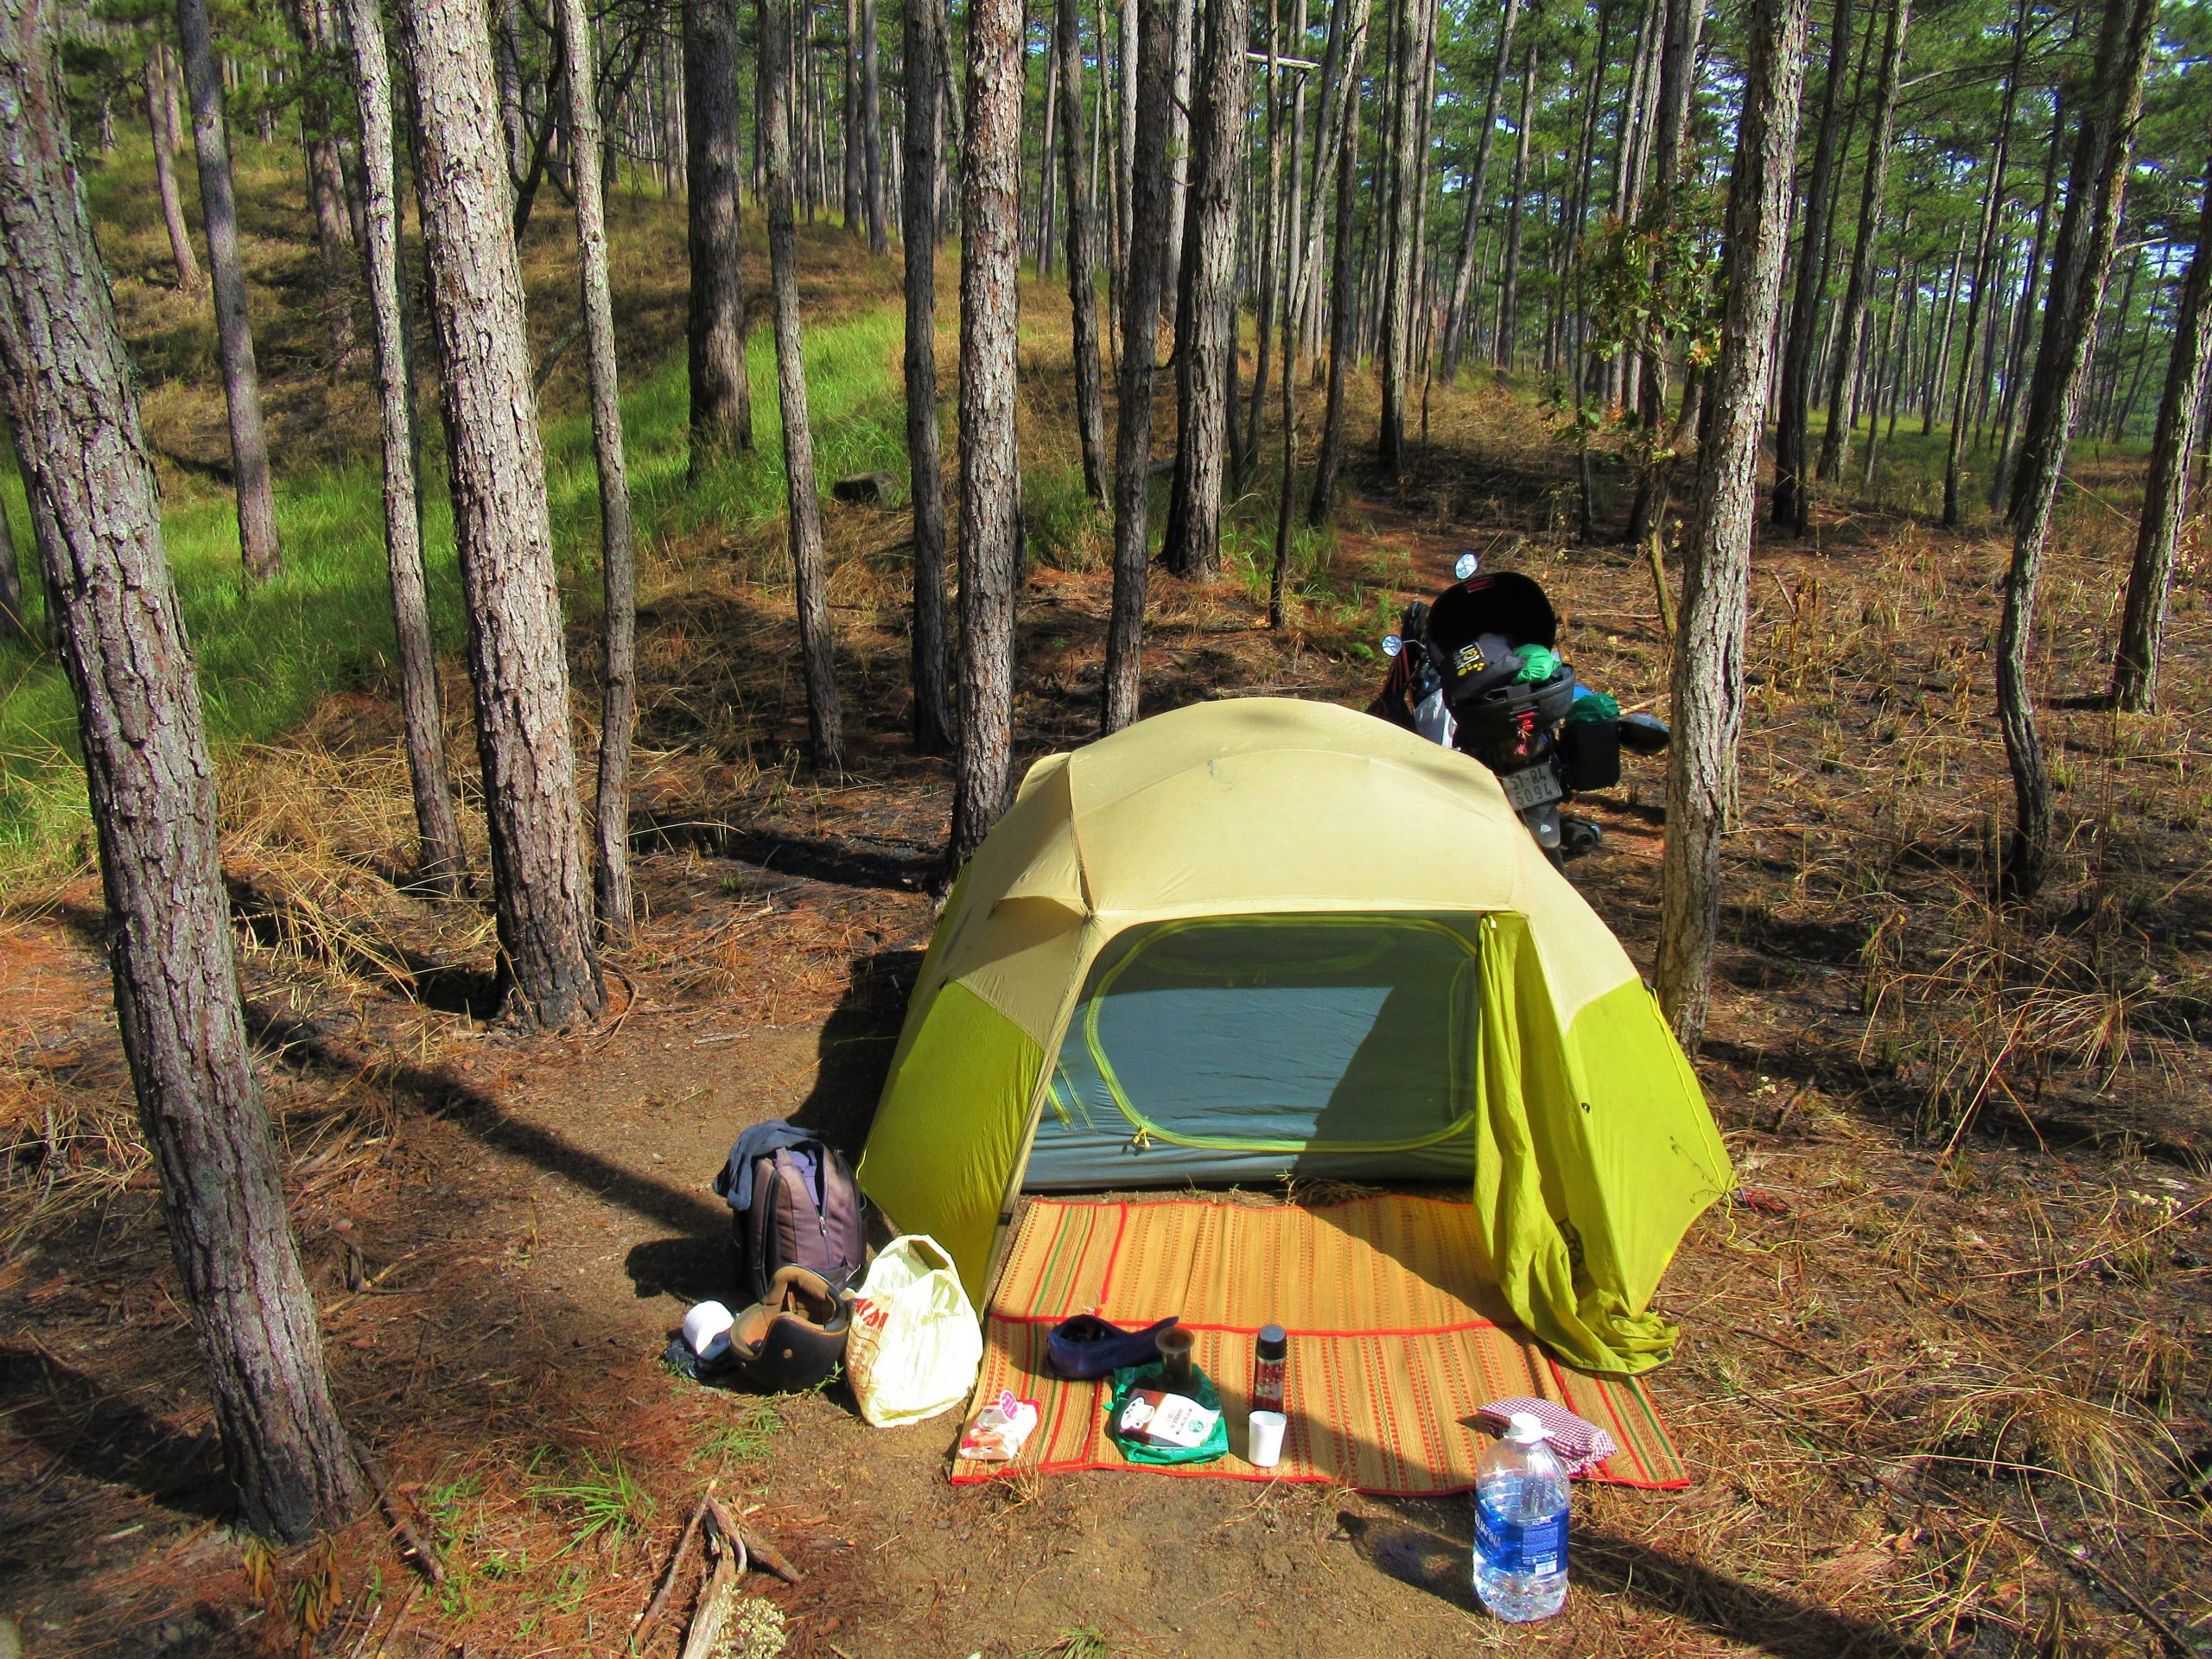 Motocamping in south-central Vietnam in the dry season